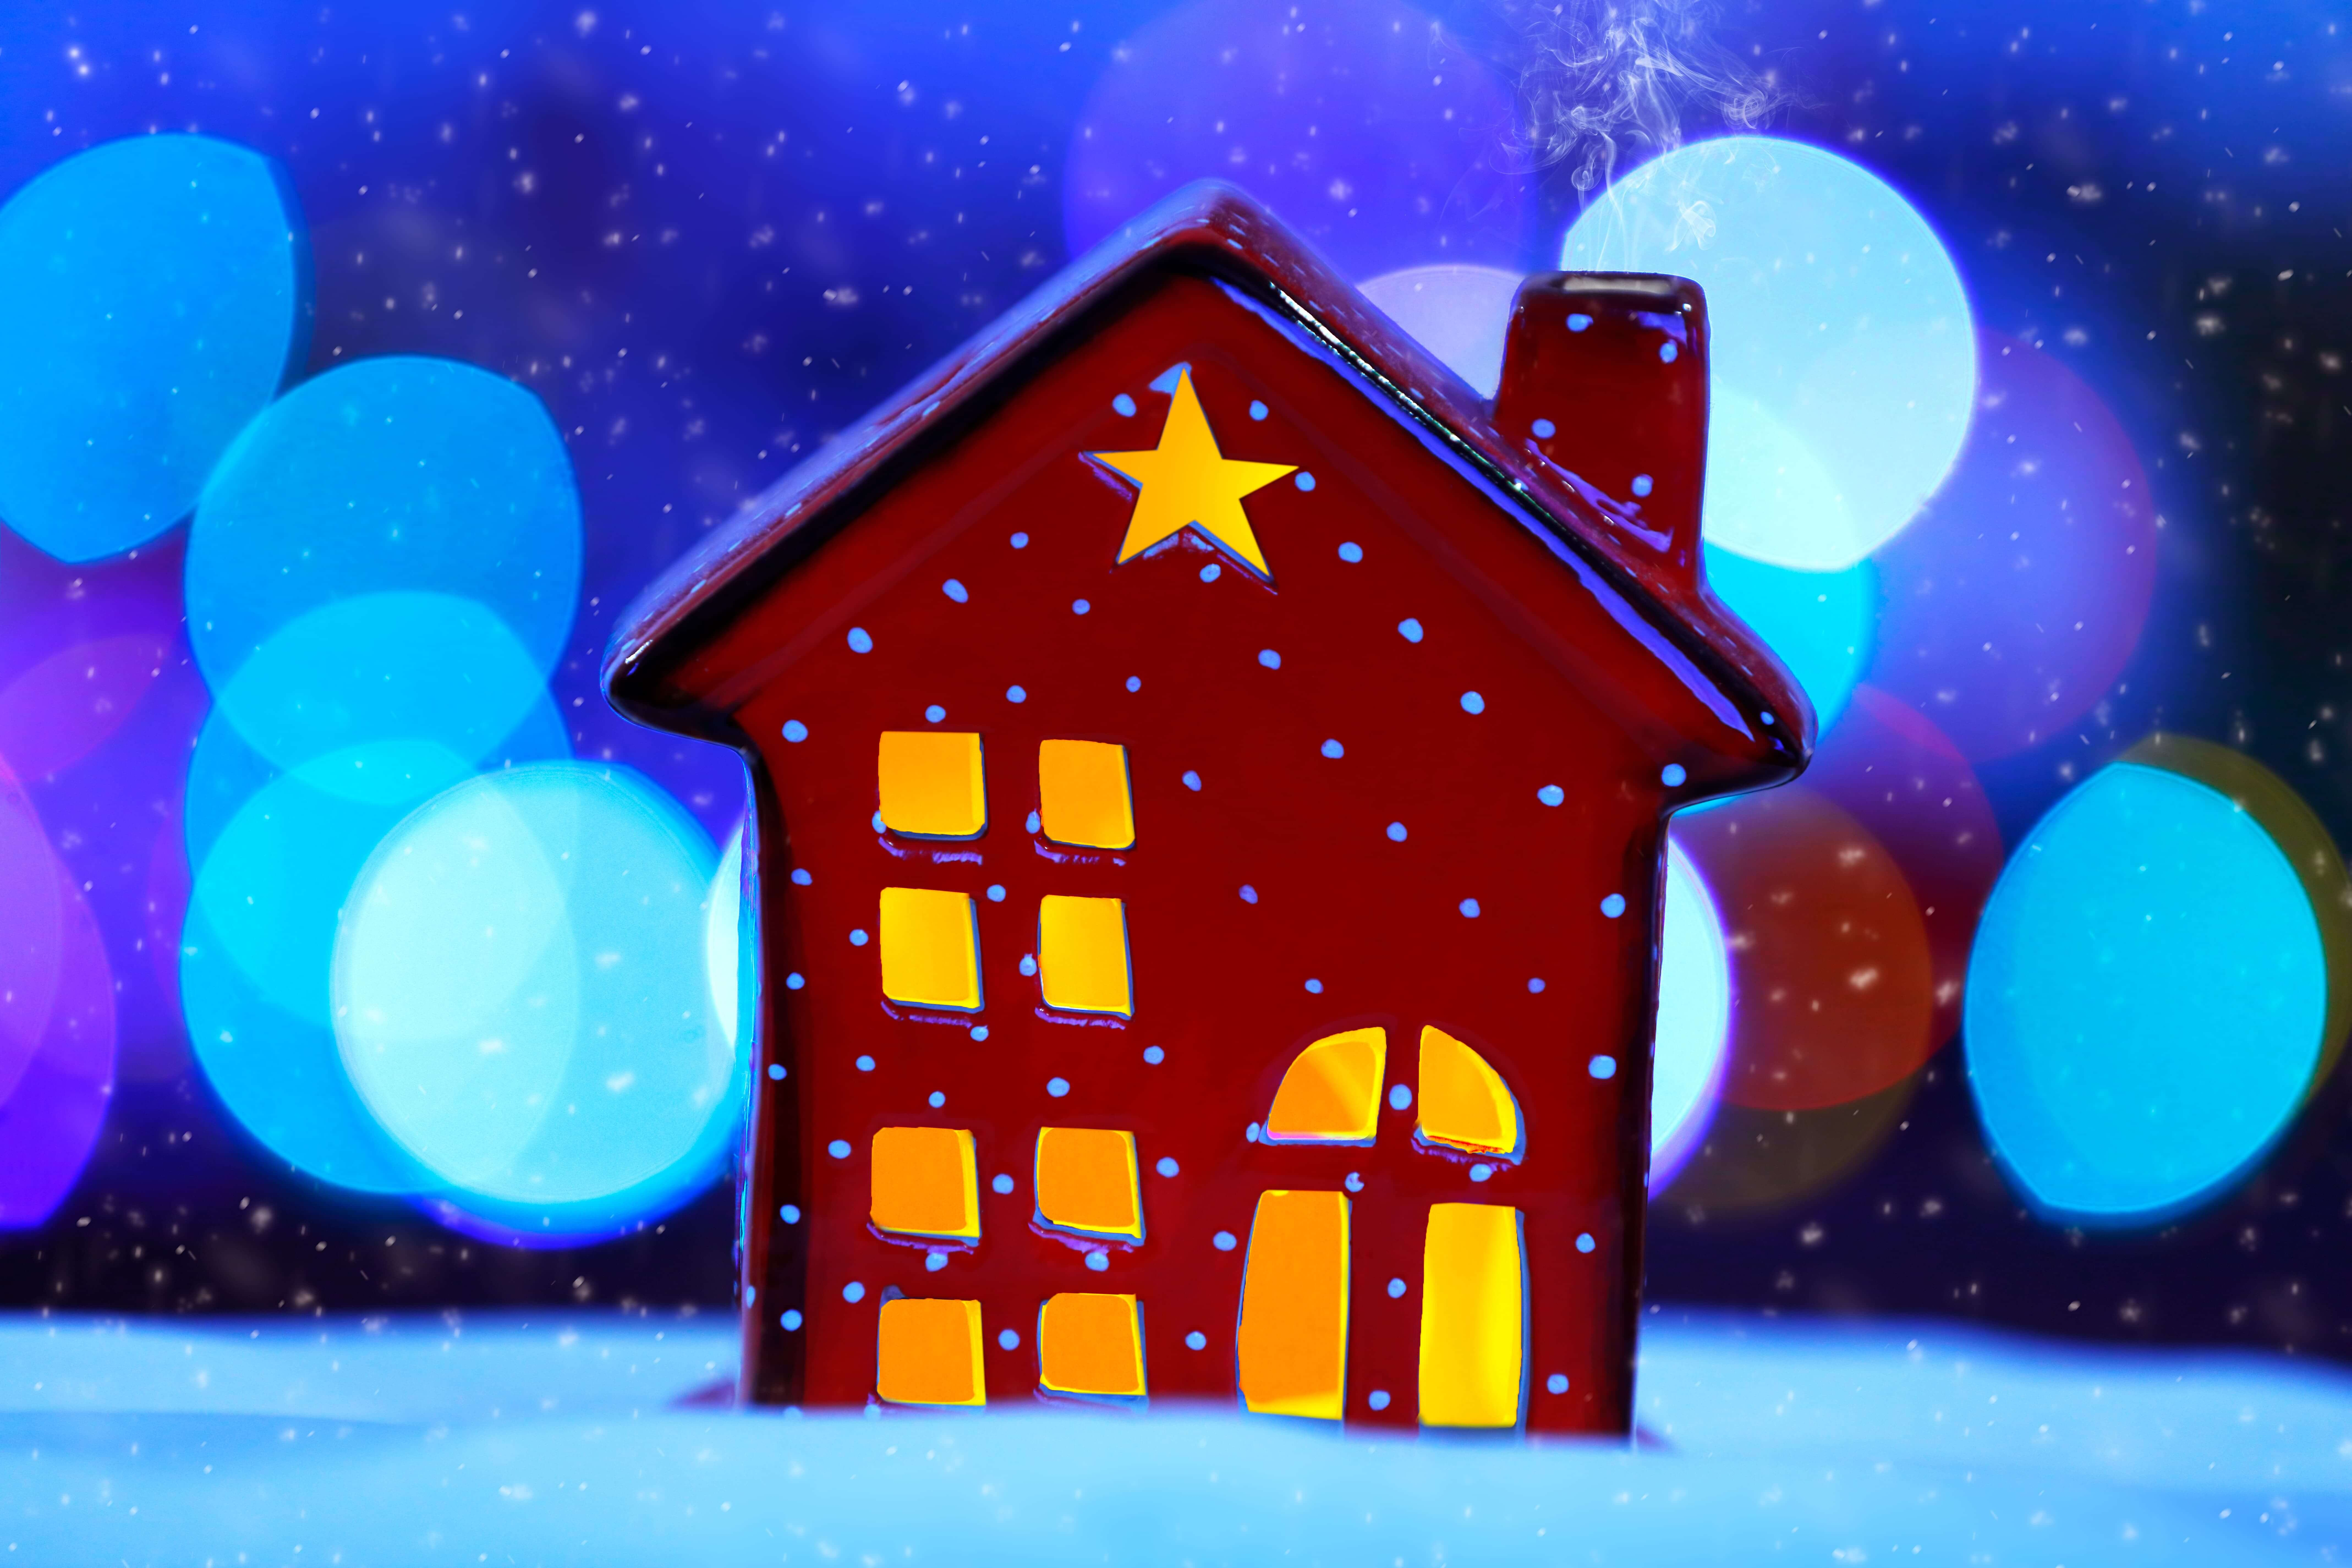 5 Reasons to Buy A Home This Winter - Bittinger Team, REALTORS